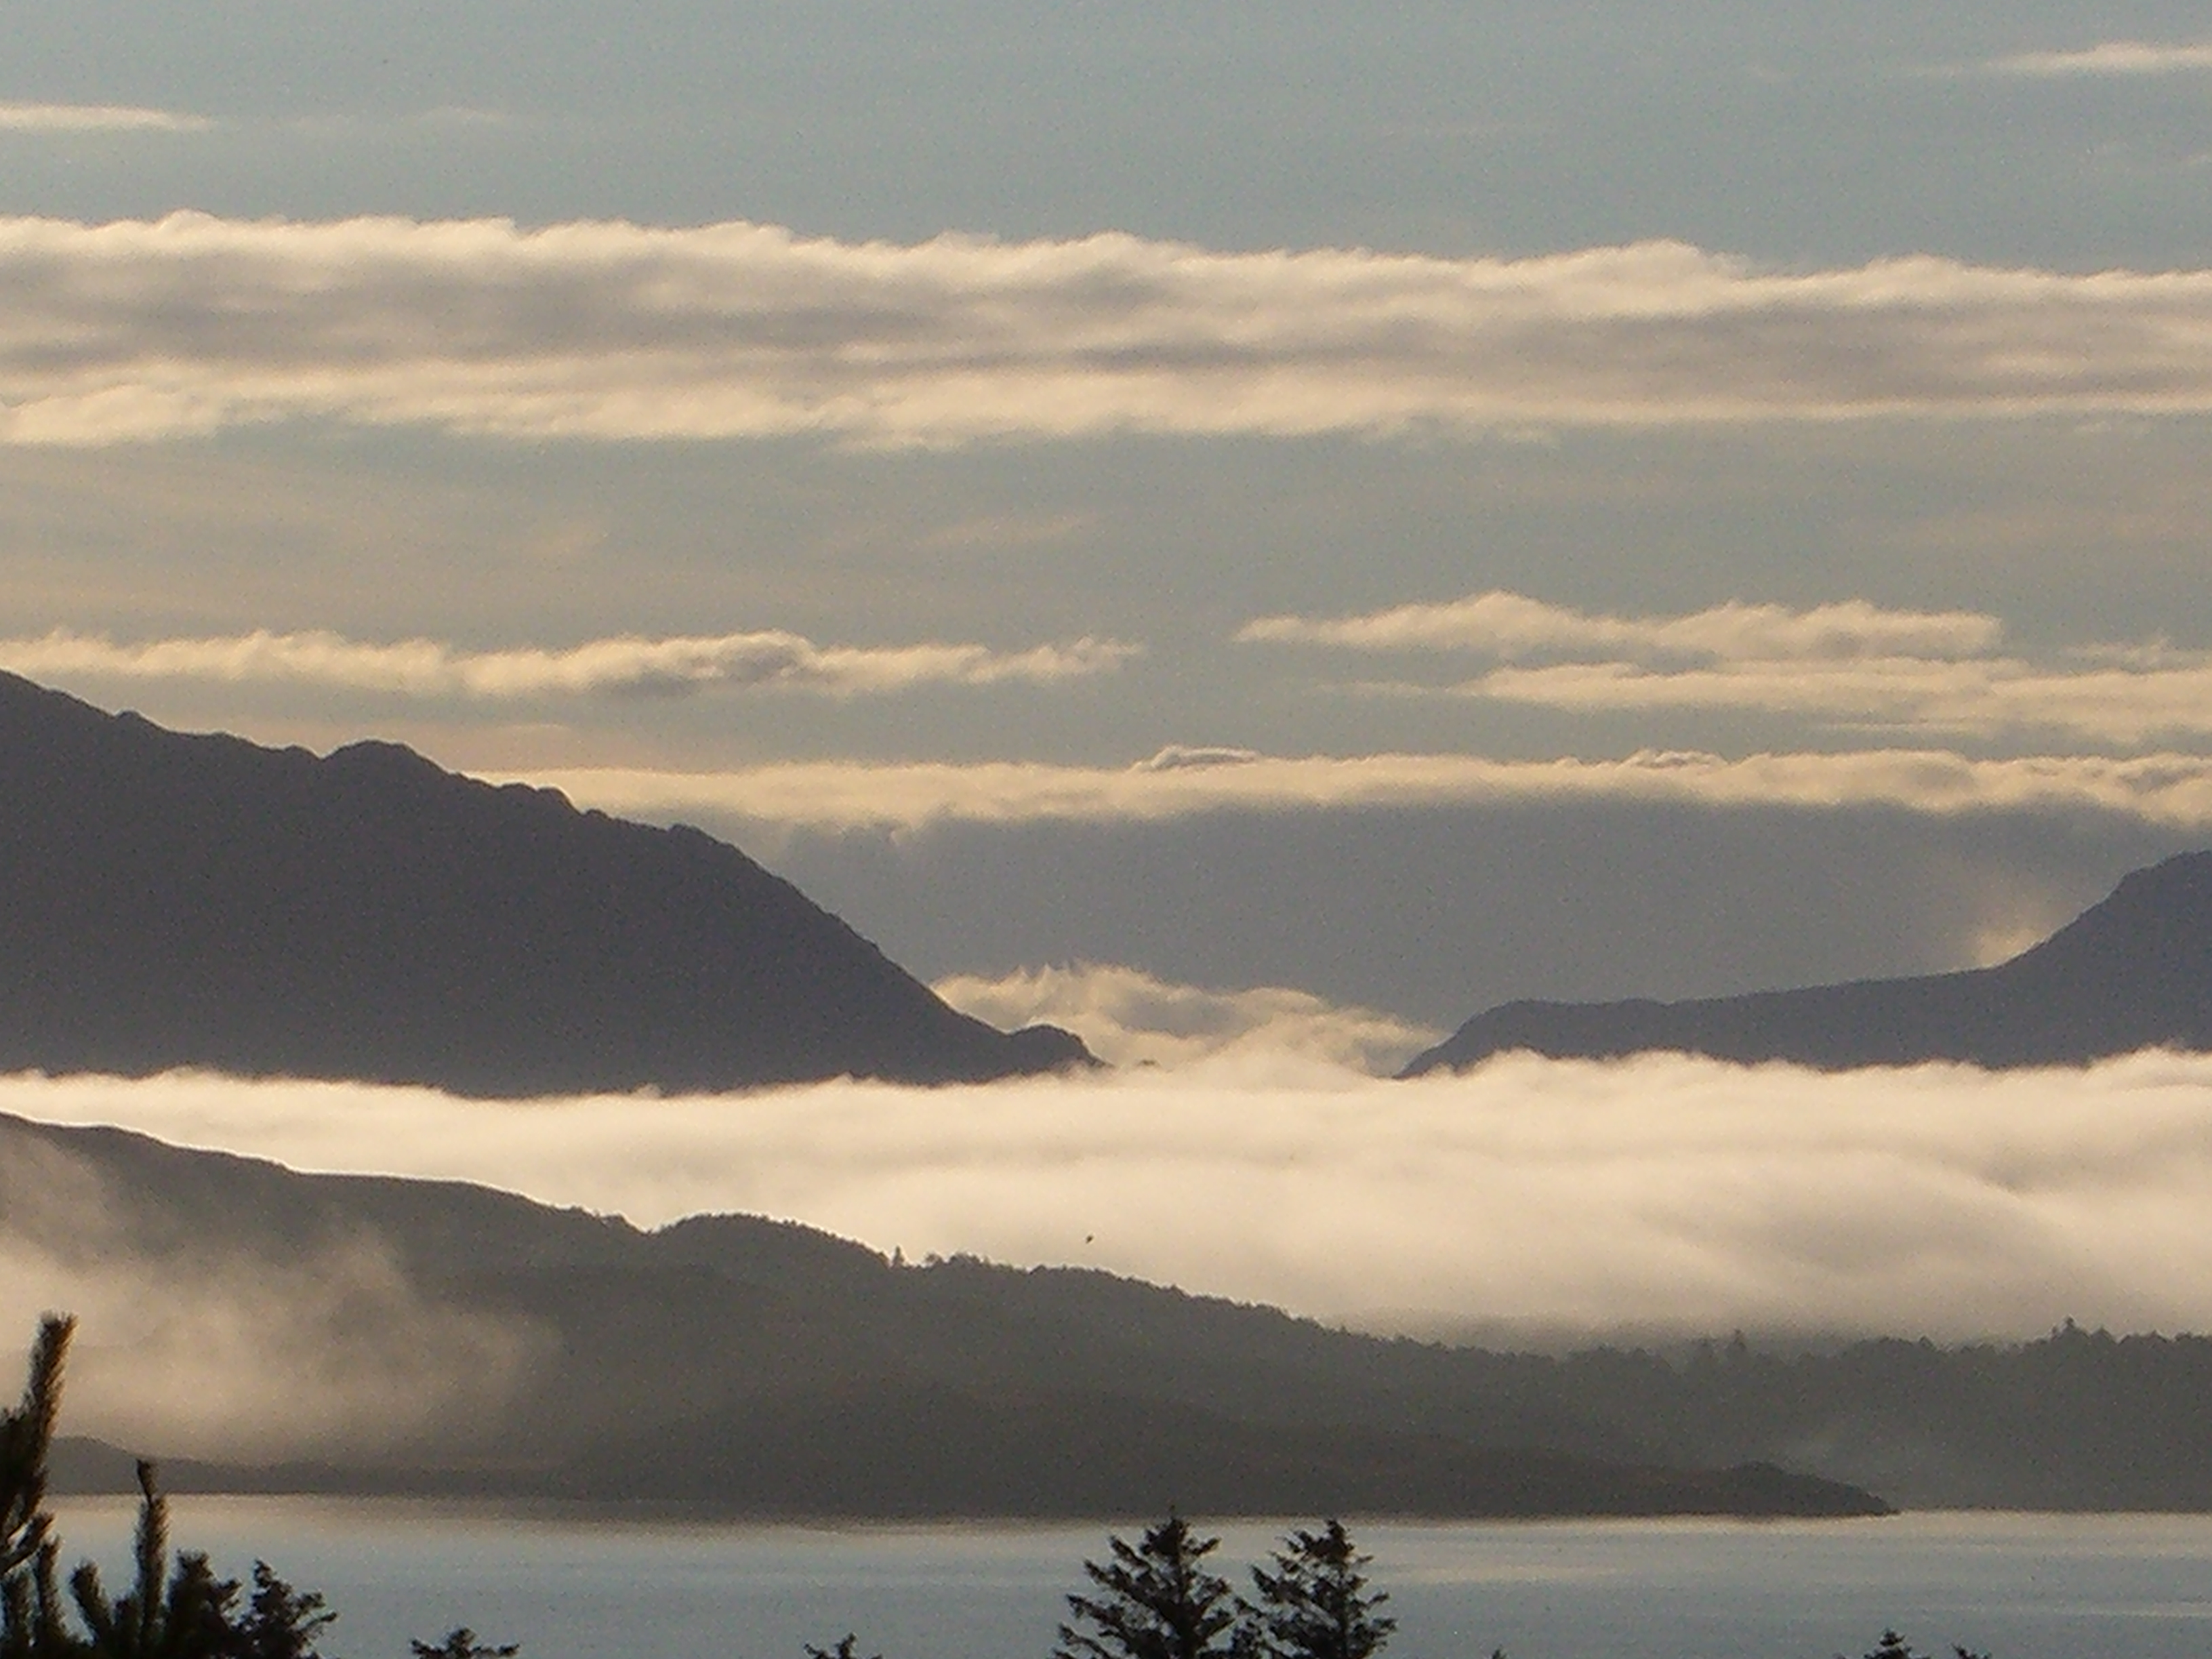 Cloud inversion over Loch Ewe